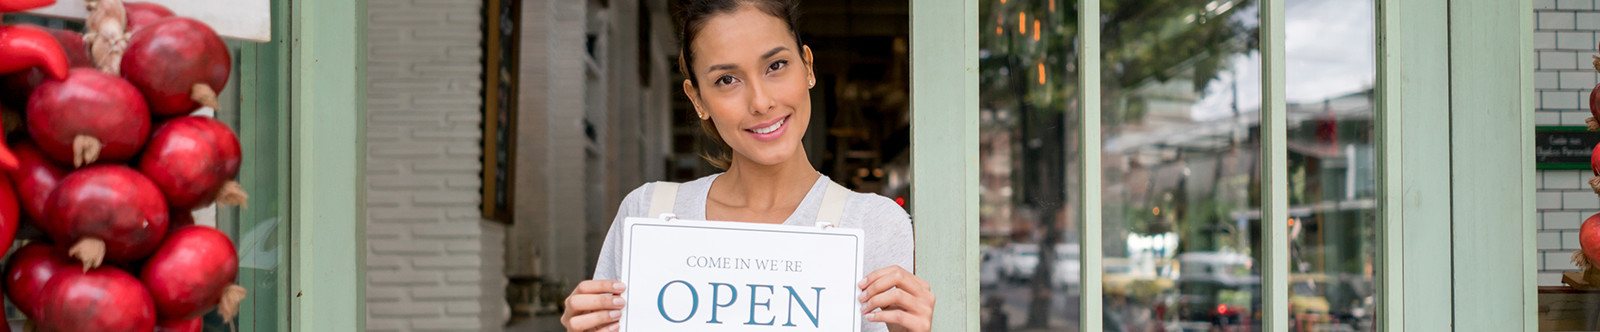 Female business owner holding open sign